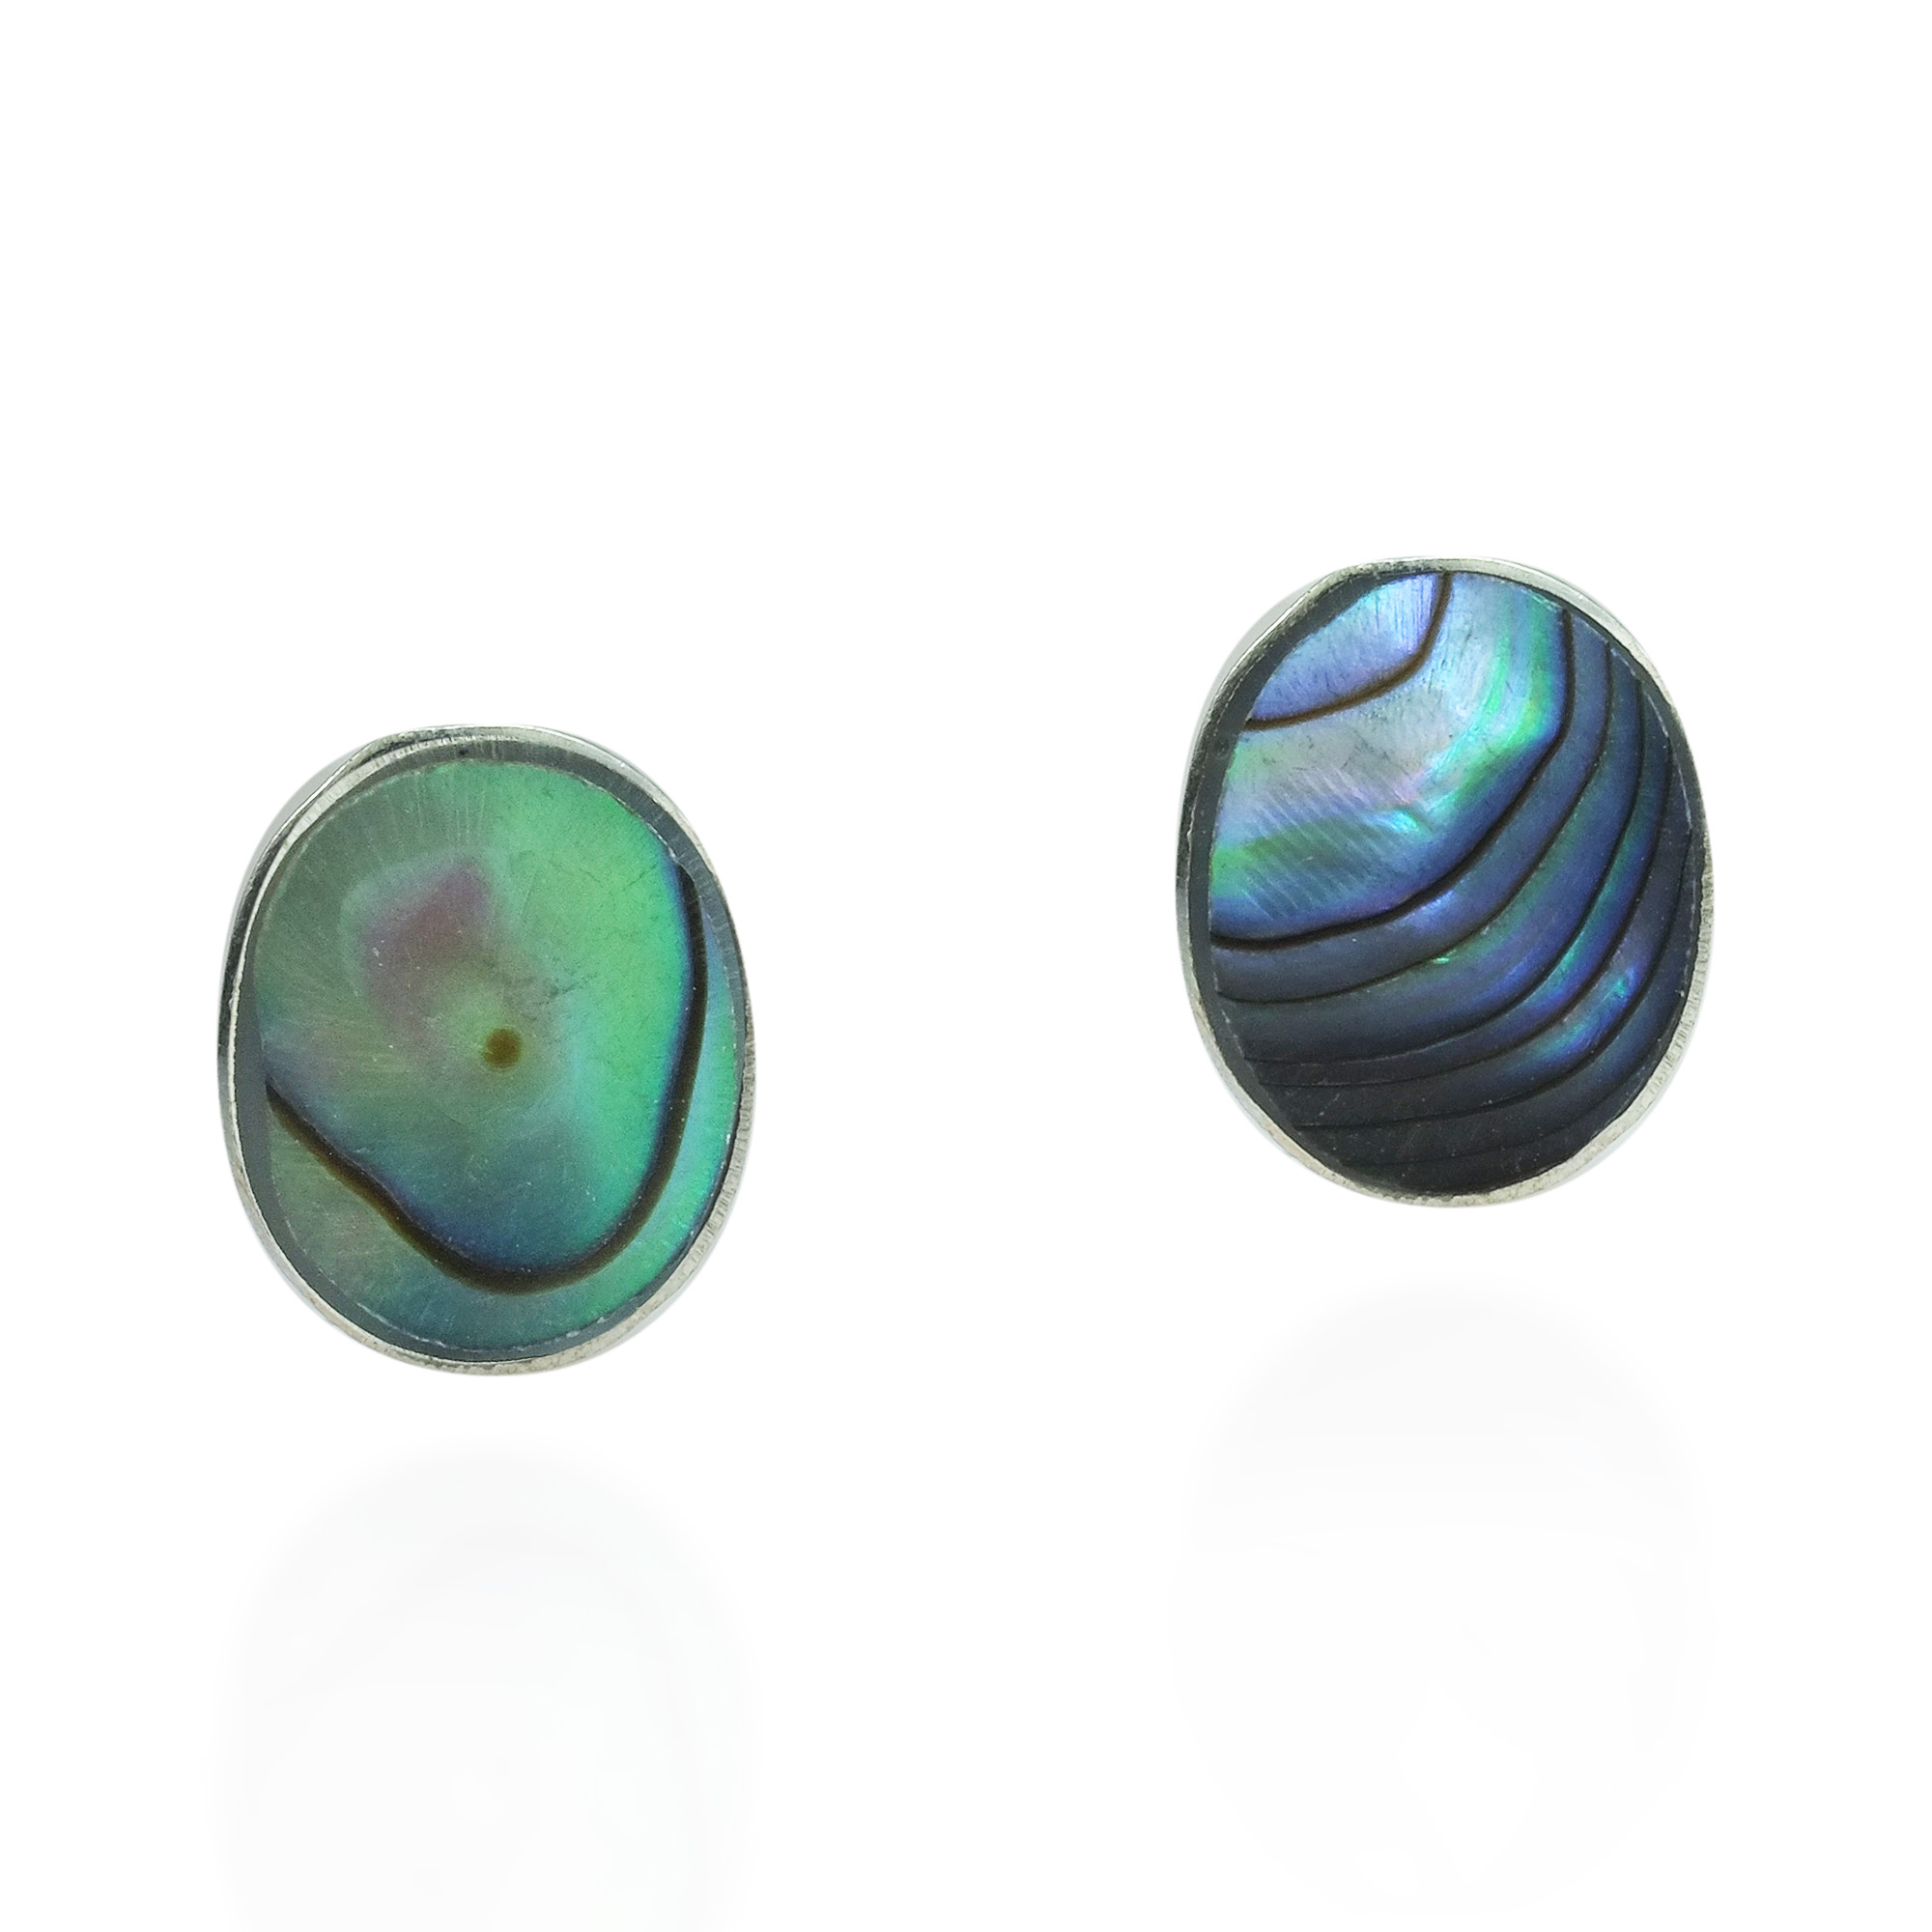 kate com rainbow walmart abalone new york square spade earrings ip stud small